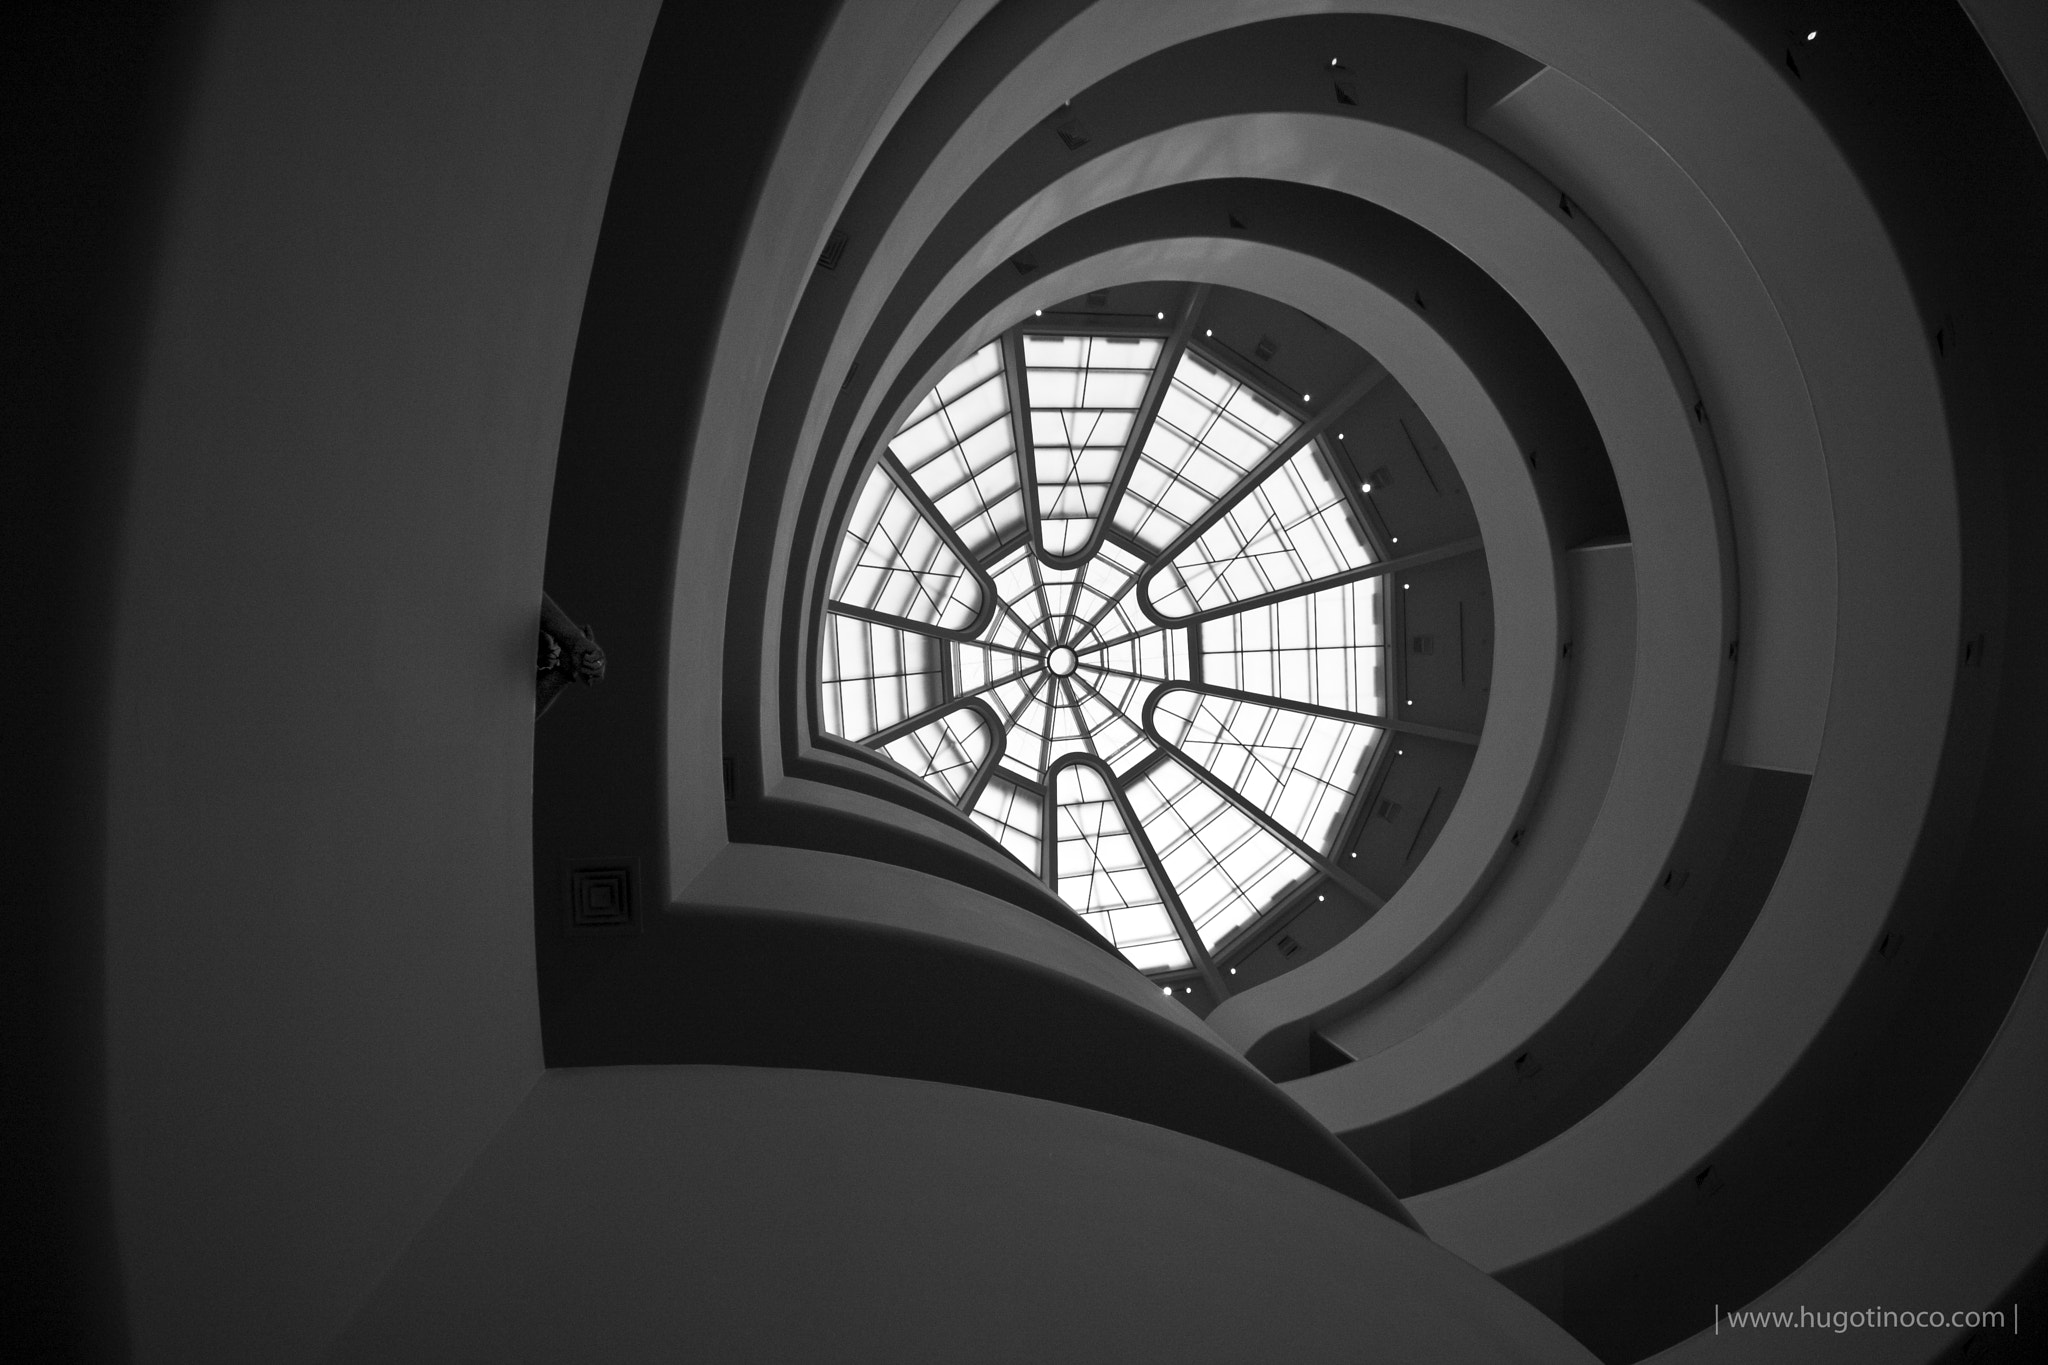 Photograph Inside Guggenheim by Hugo Tinoco on 500px